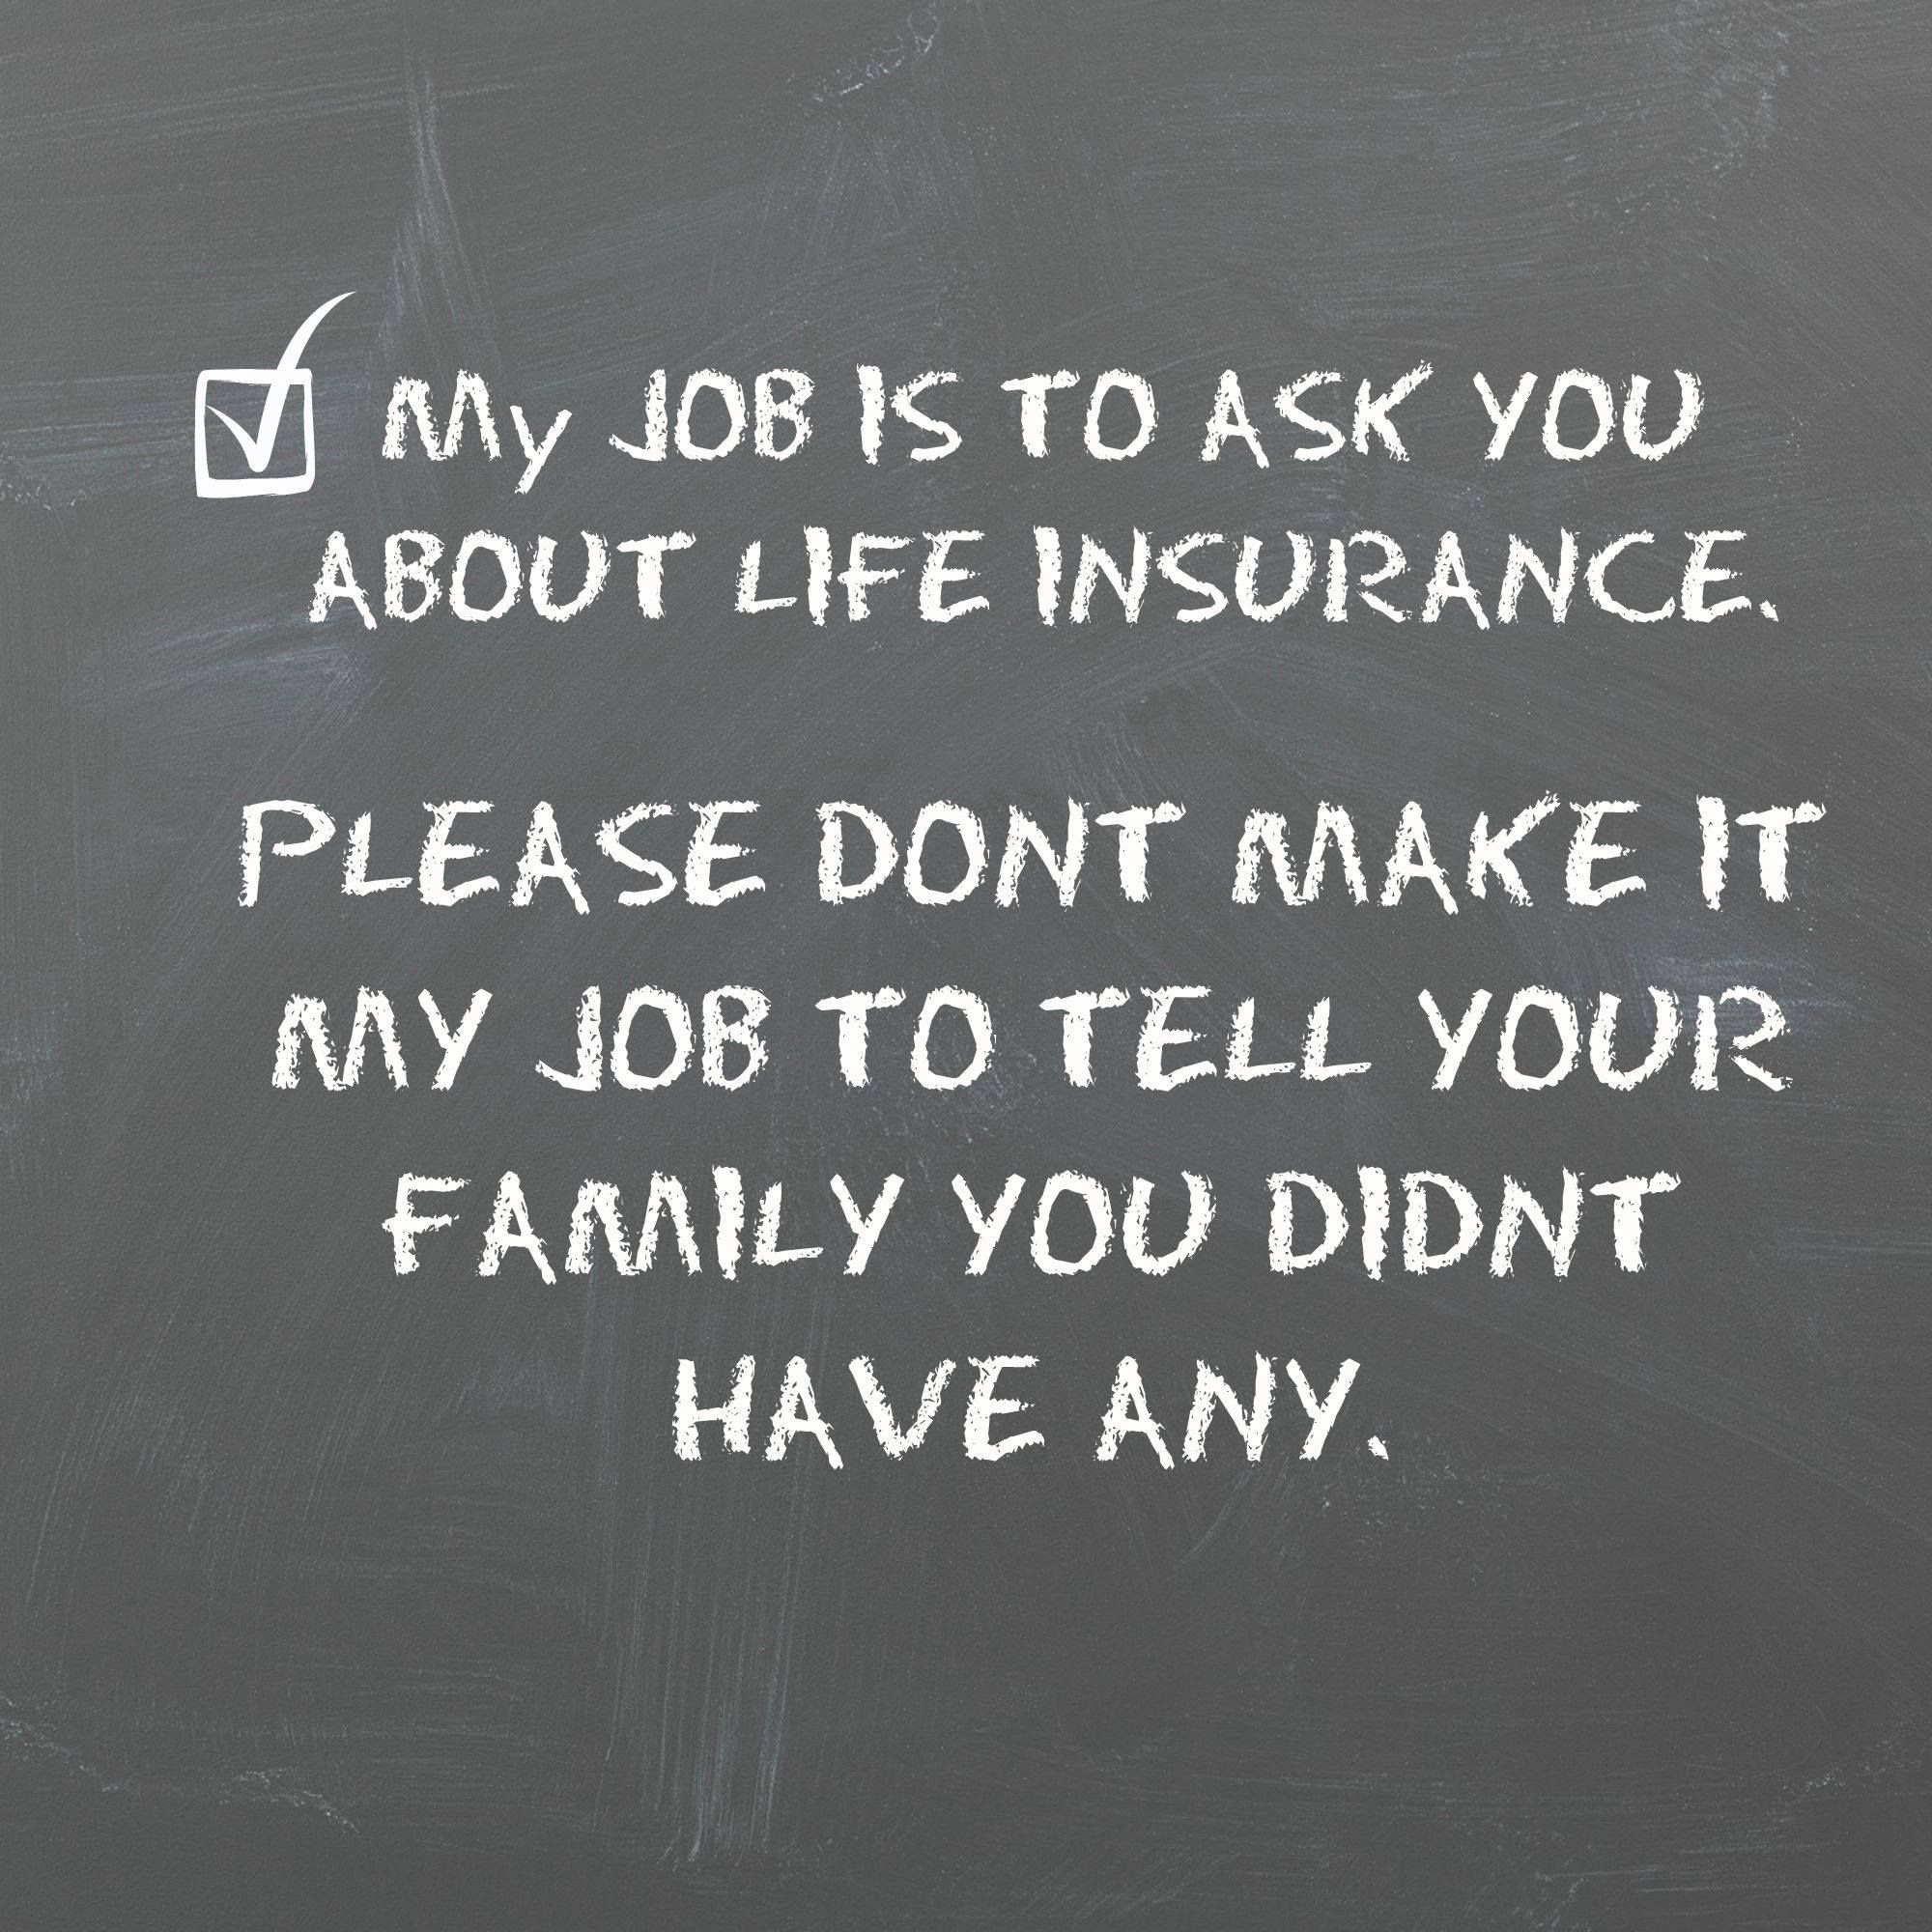 State Farm Life Insurance Quote Inspiration Call Us For Any #lifeinsurance Questions That You Have At 330225